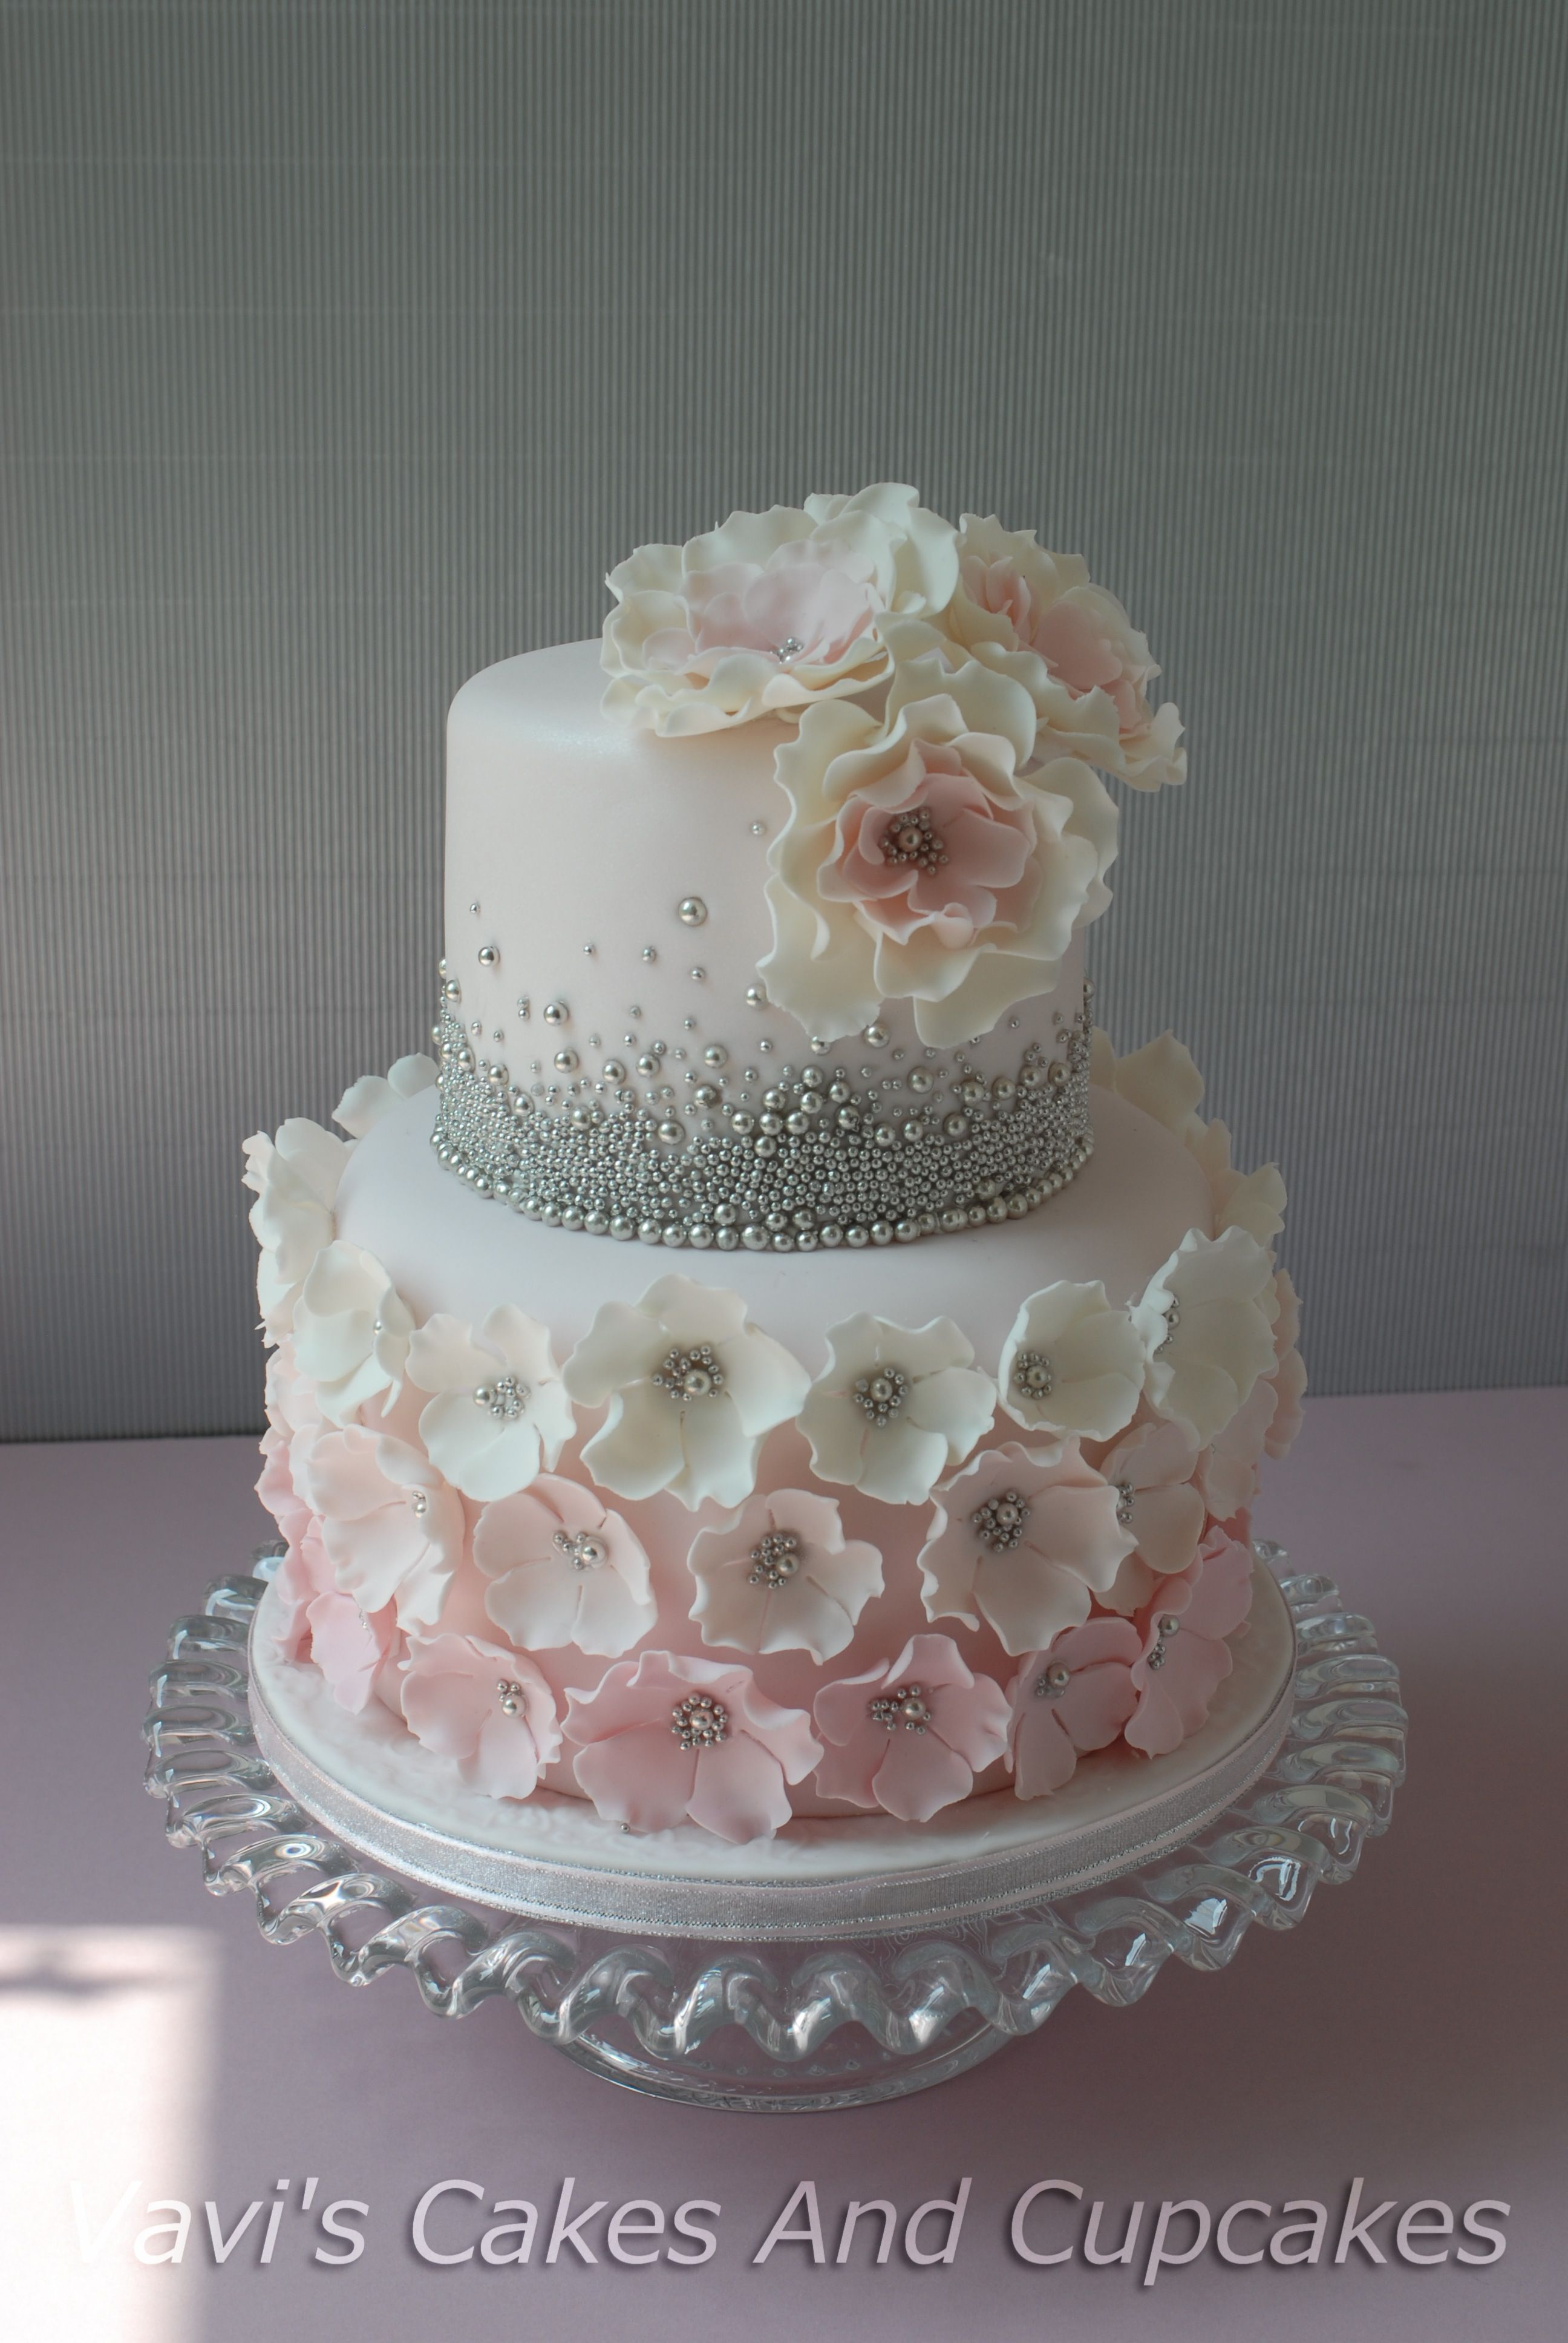 I love the top tier without the flowers Maybe a 50 on top with your